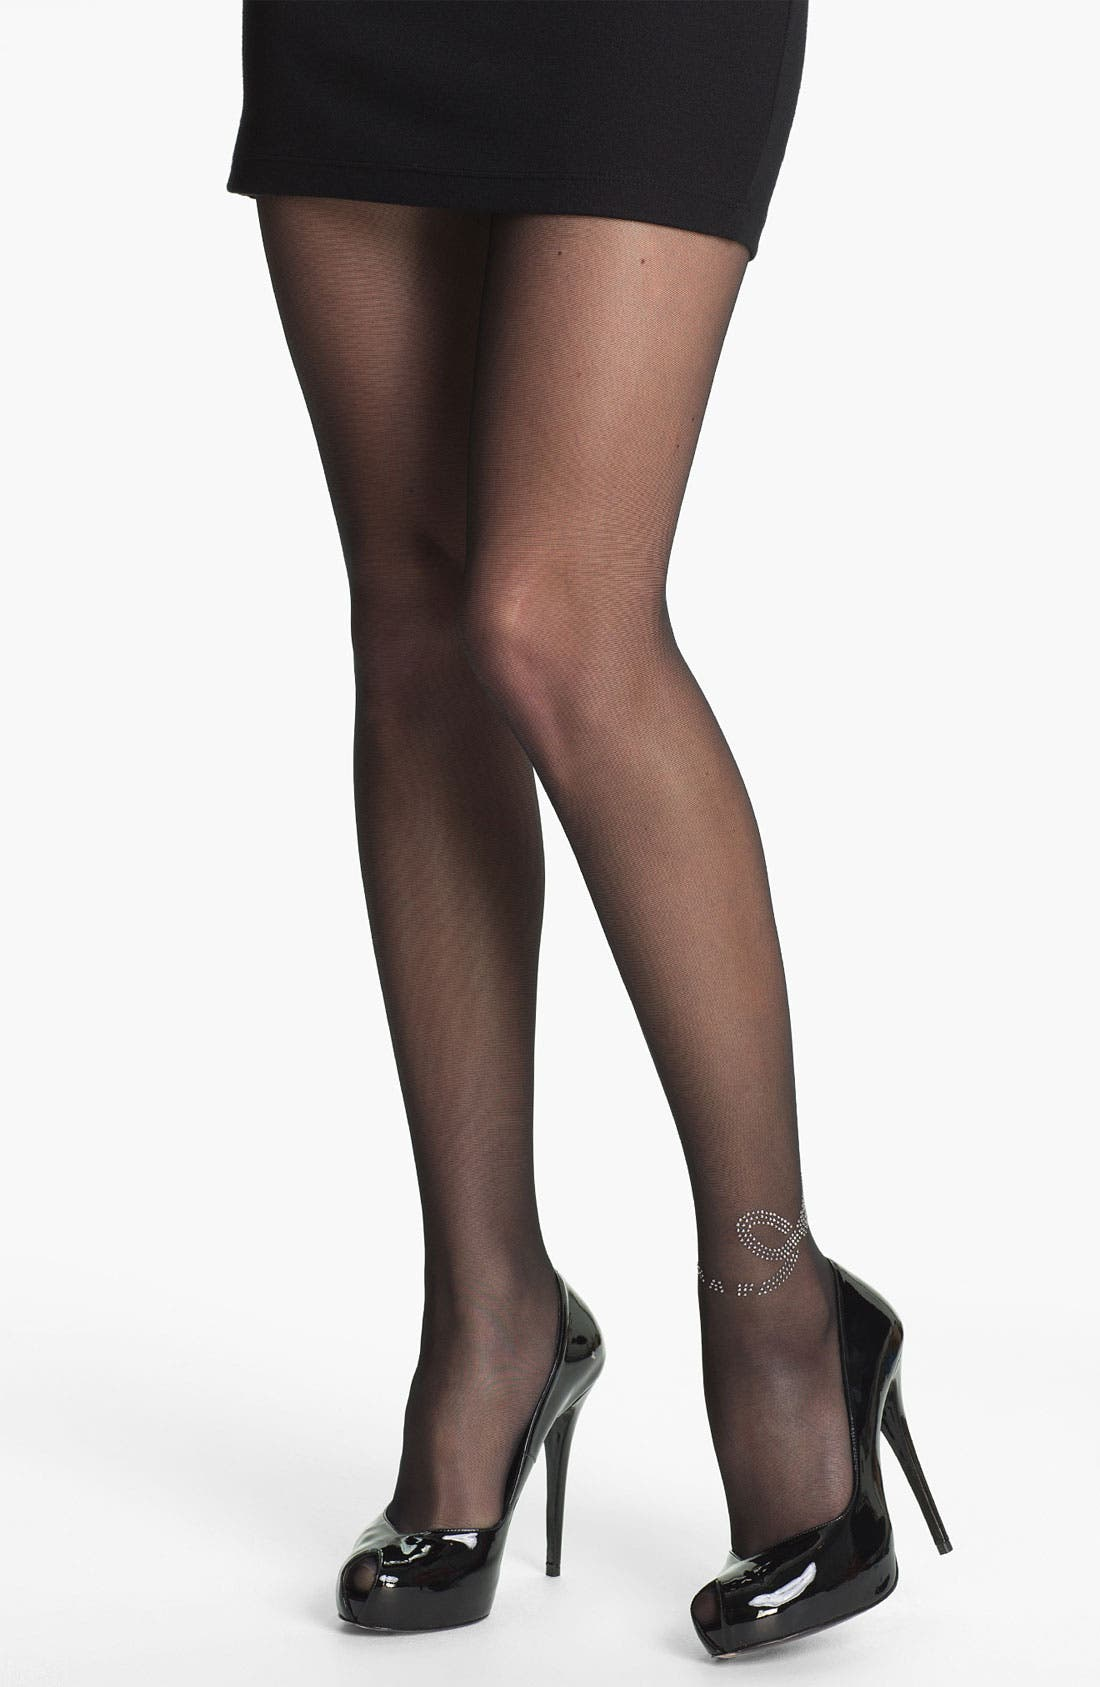 Alternate Image 1 Selected - Oroblu 'Joelle' Pantyhose